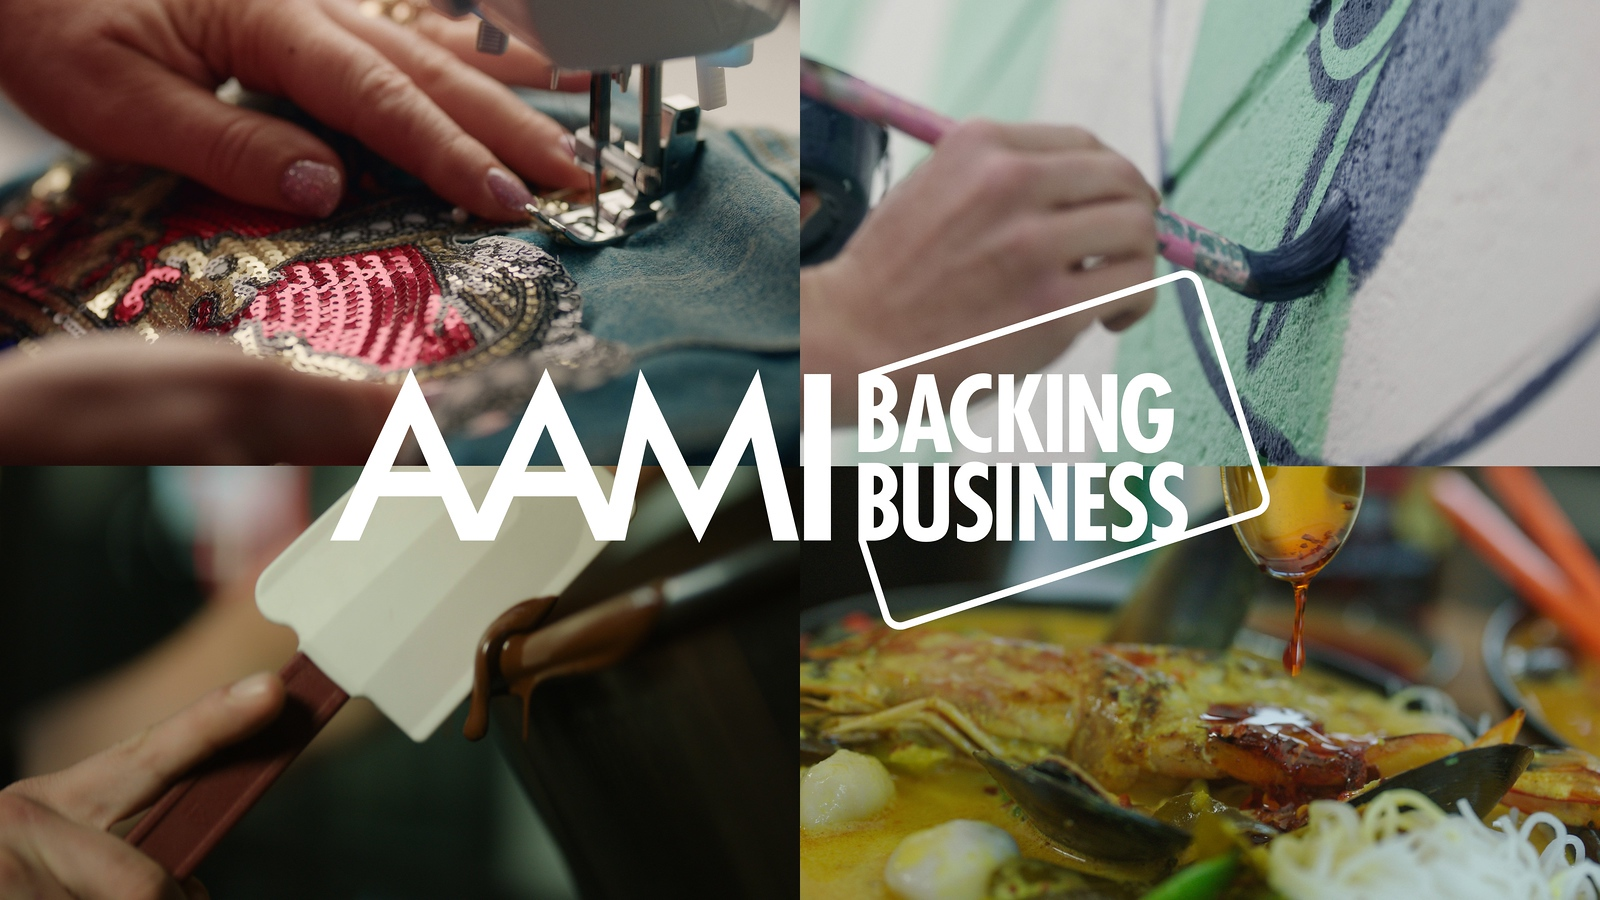 AAMI Backing Business (photo credit: AAMI)